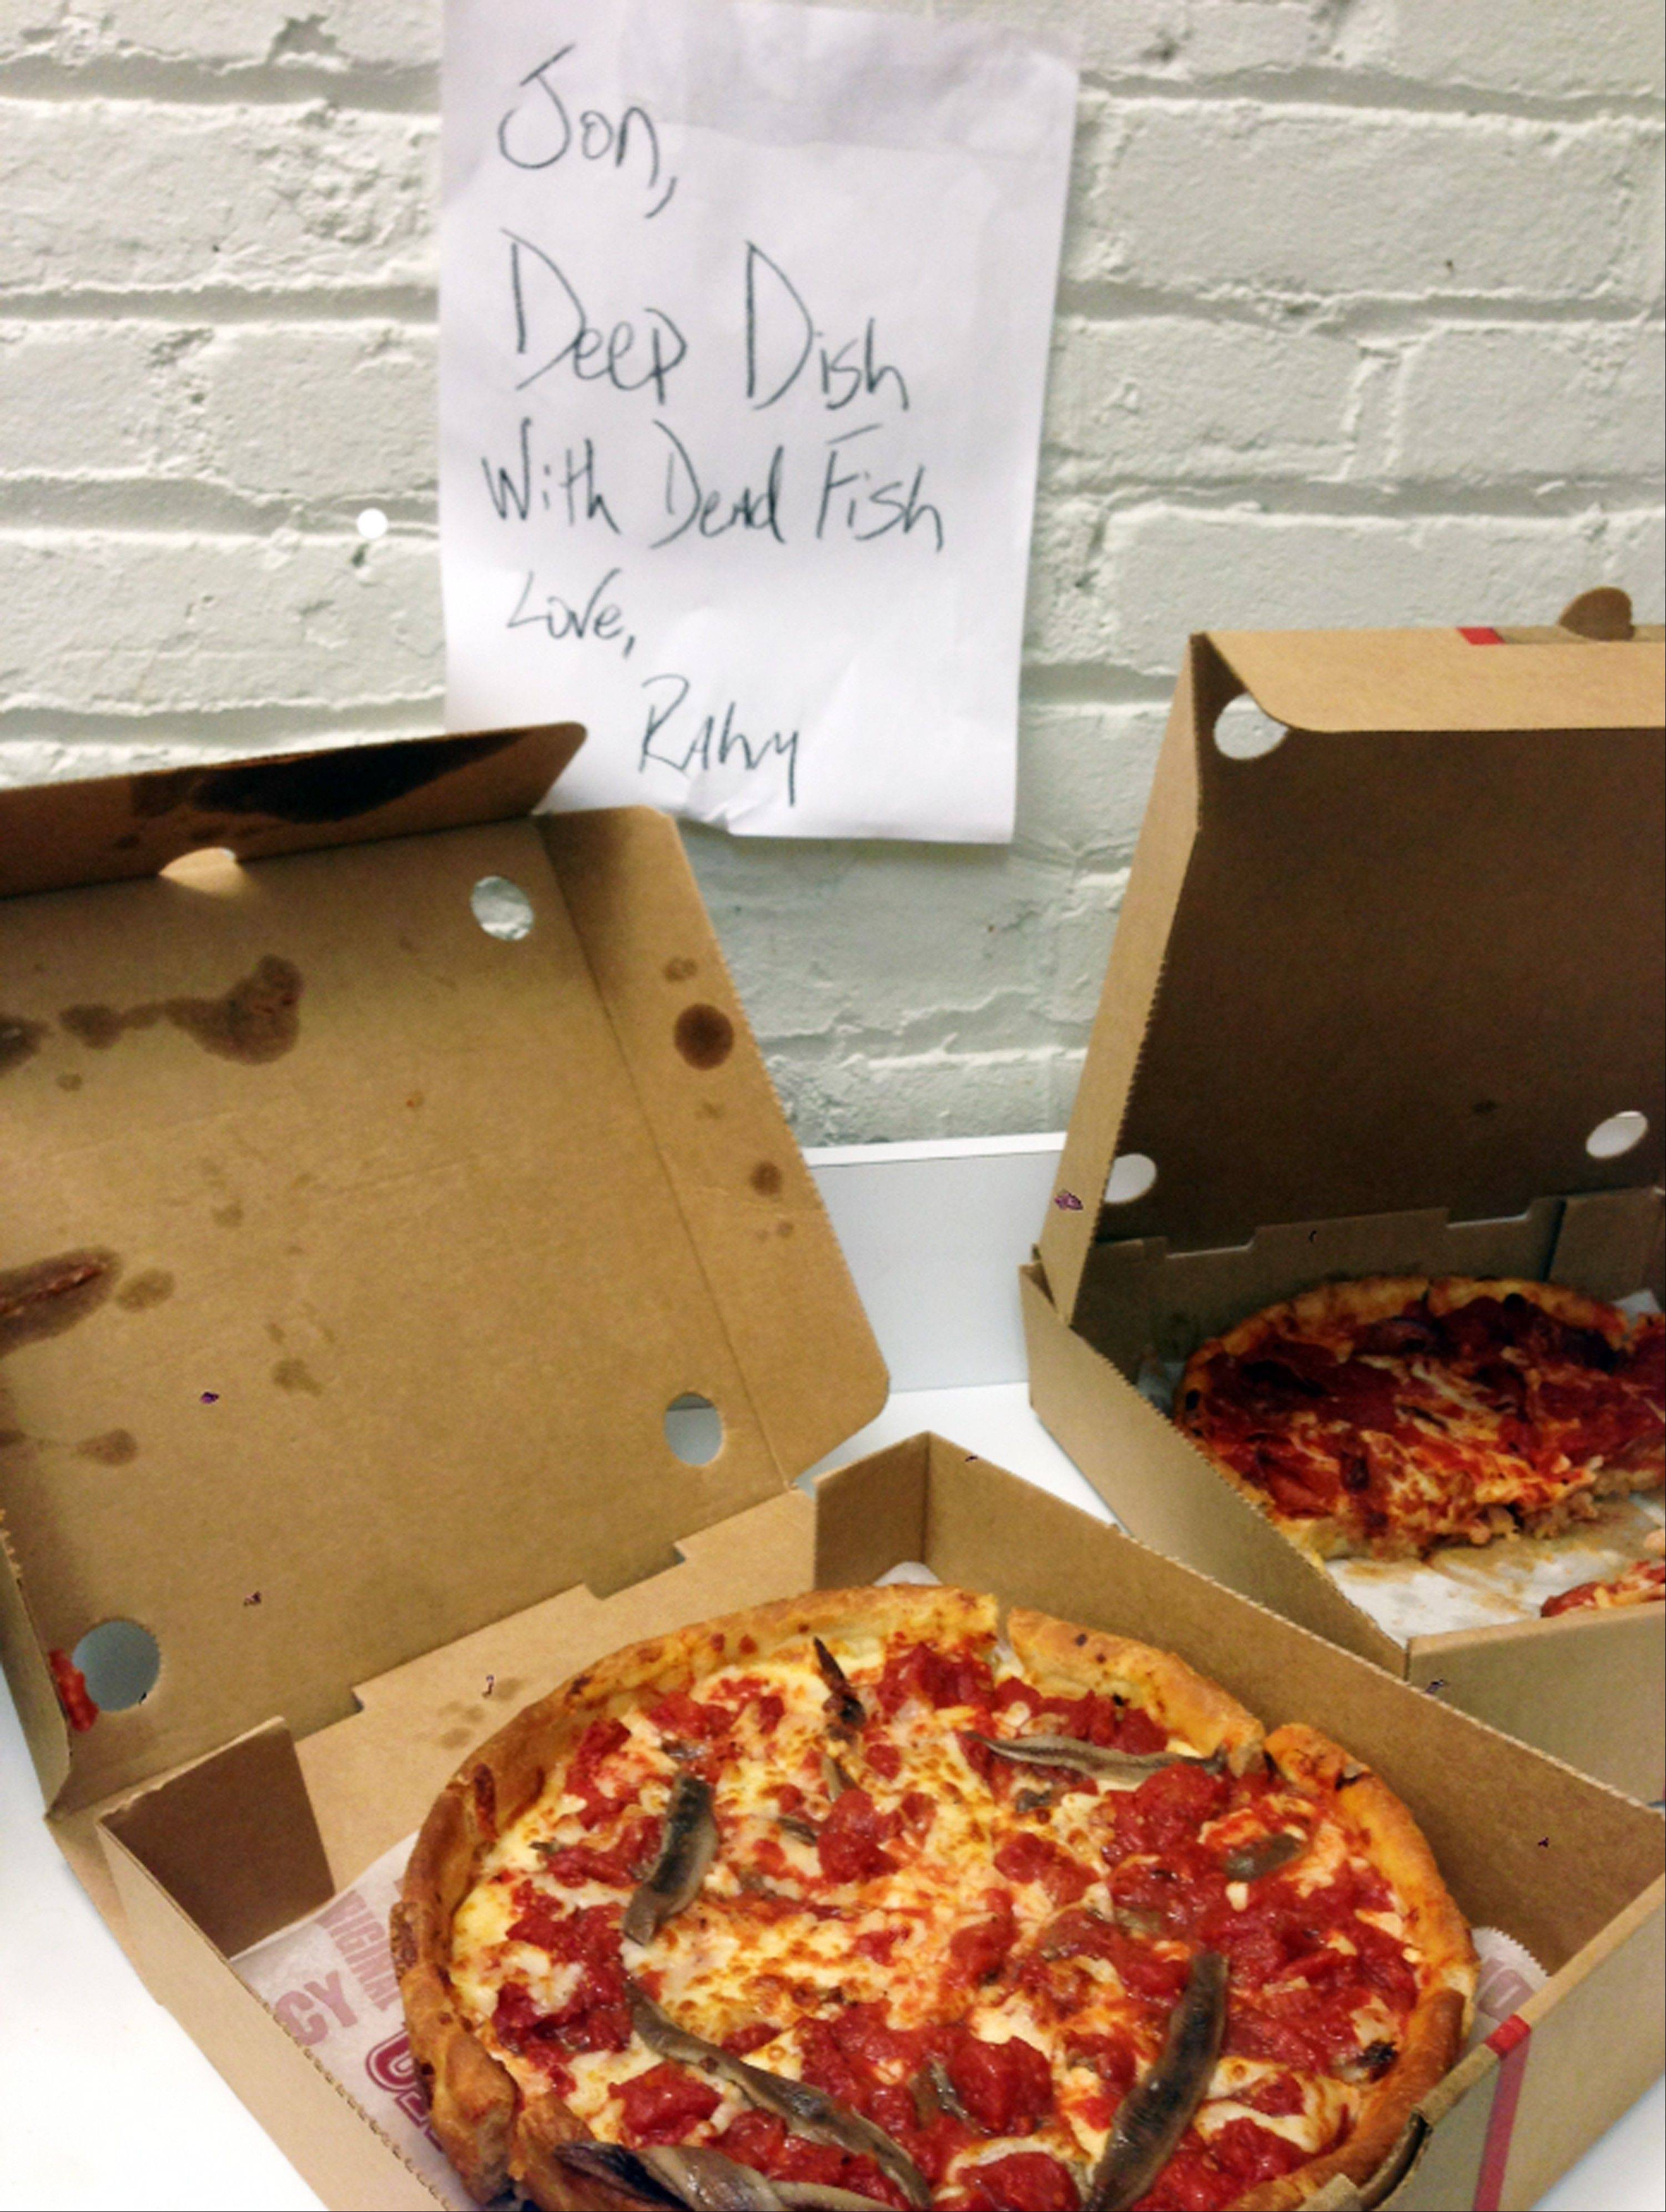 Associated Press/provided by The Daily Show Two Chicago-style deep-dish pizzas that were sent to comedian Jon Stewart accompanied by a note saying: Jon, Deep Dish With Dead Fish. Love, Rahm.